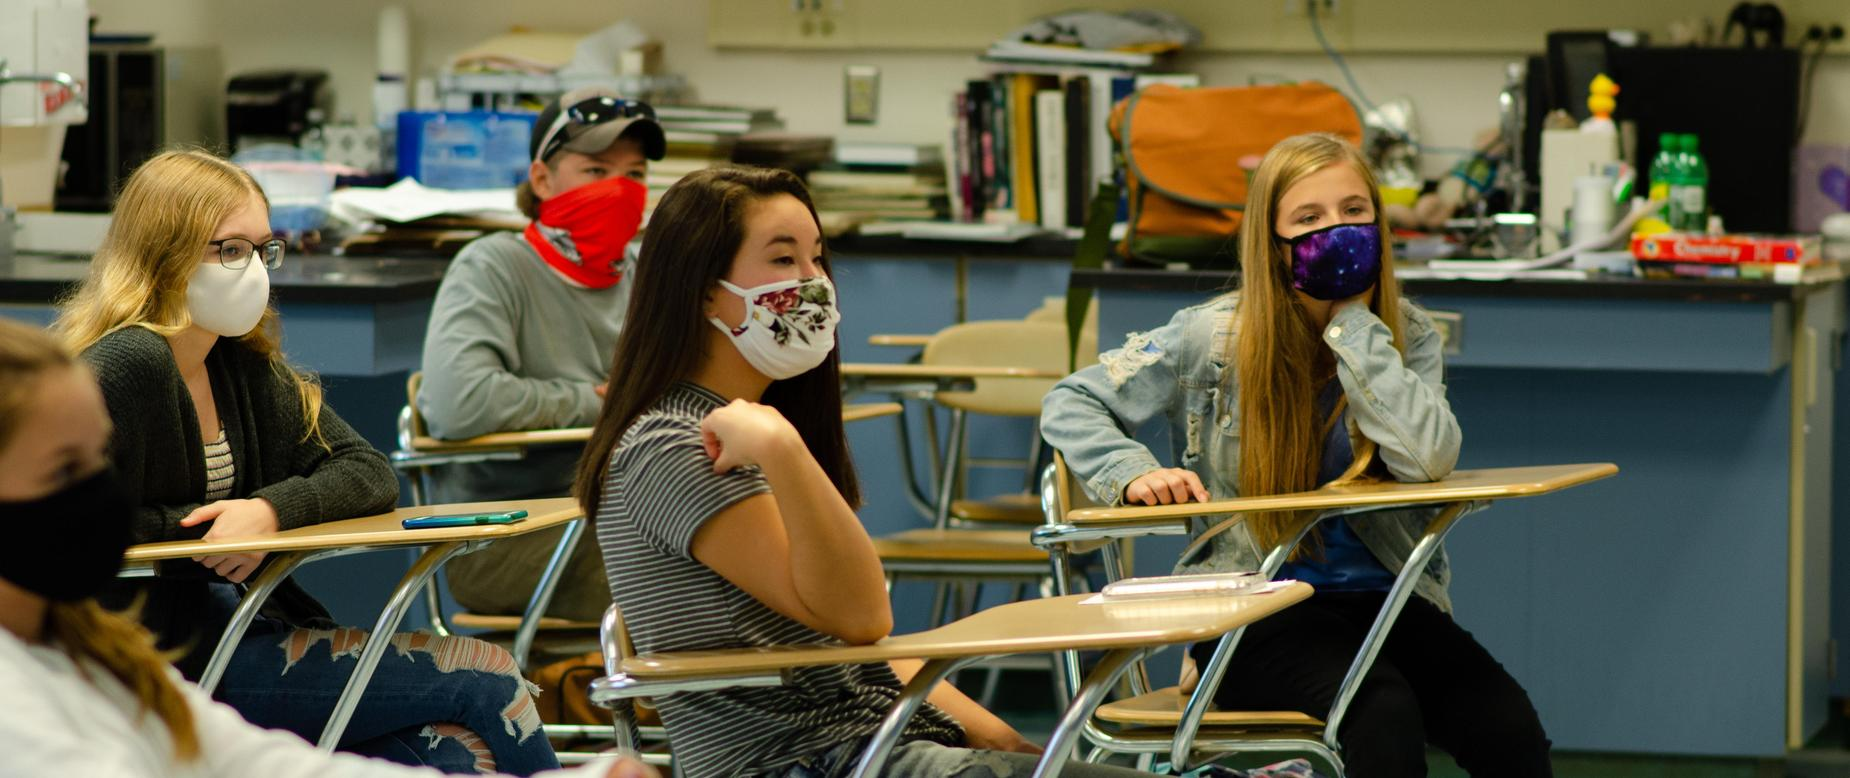 students at their desks wearing masks